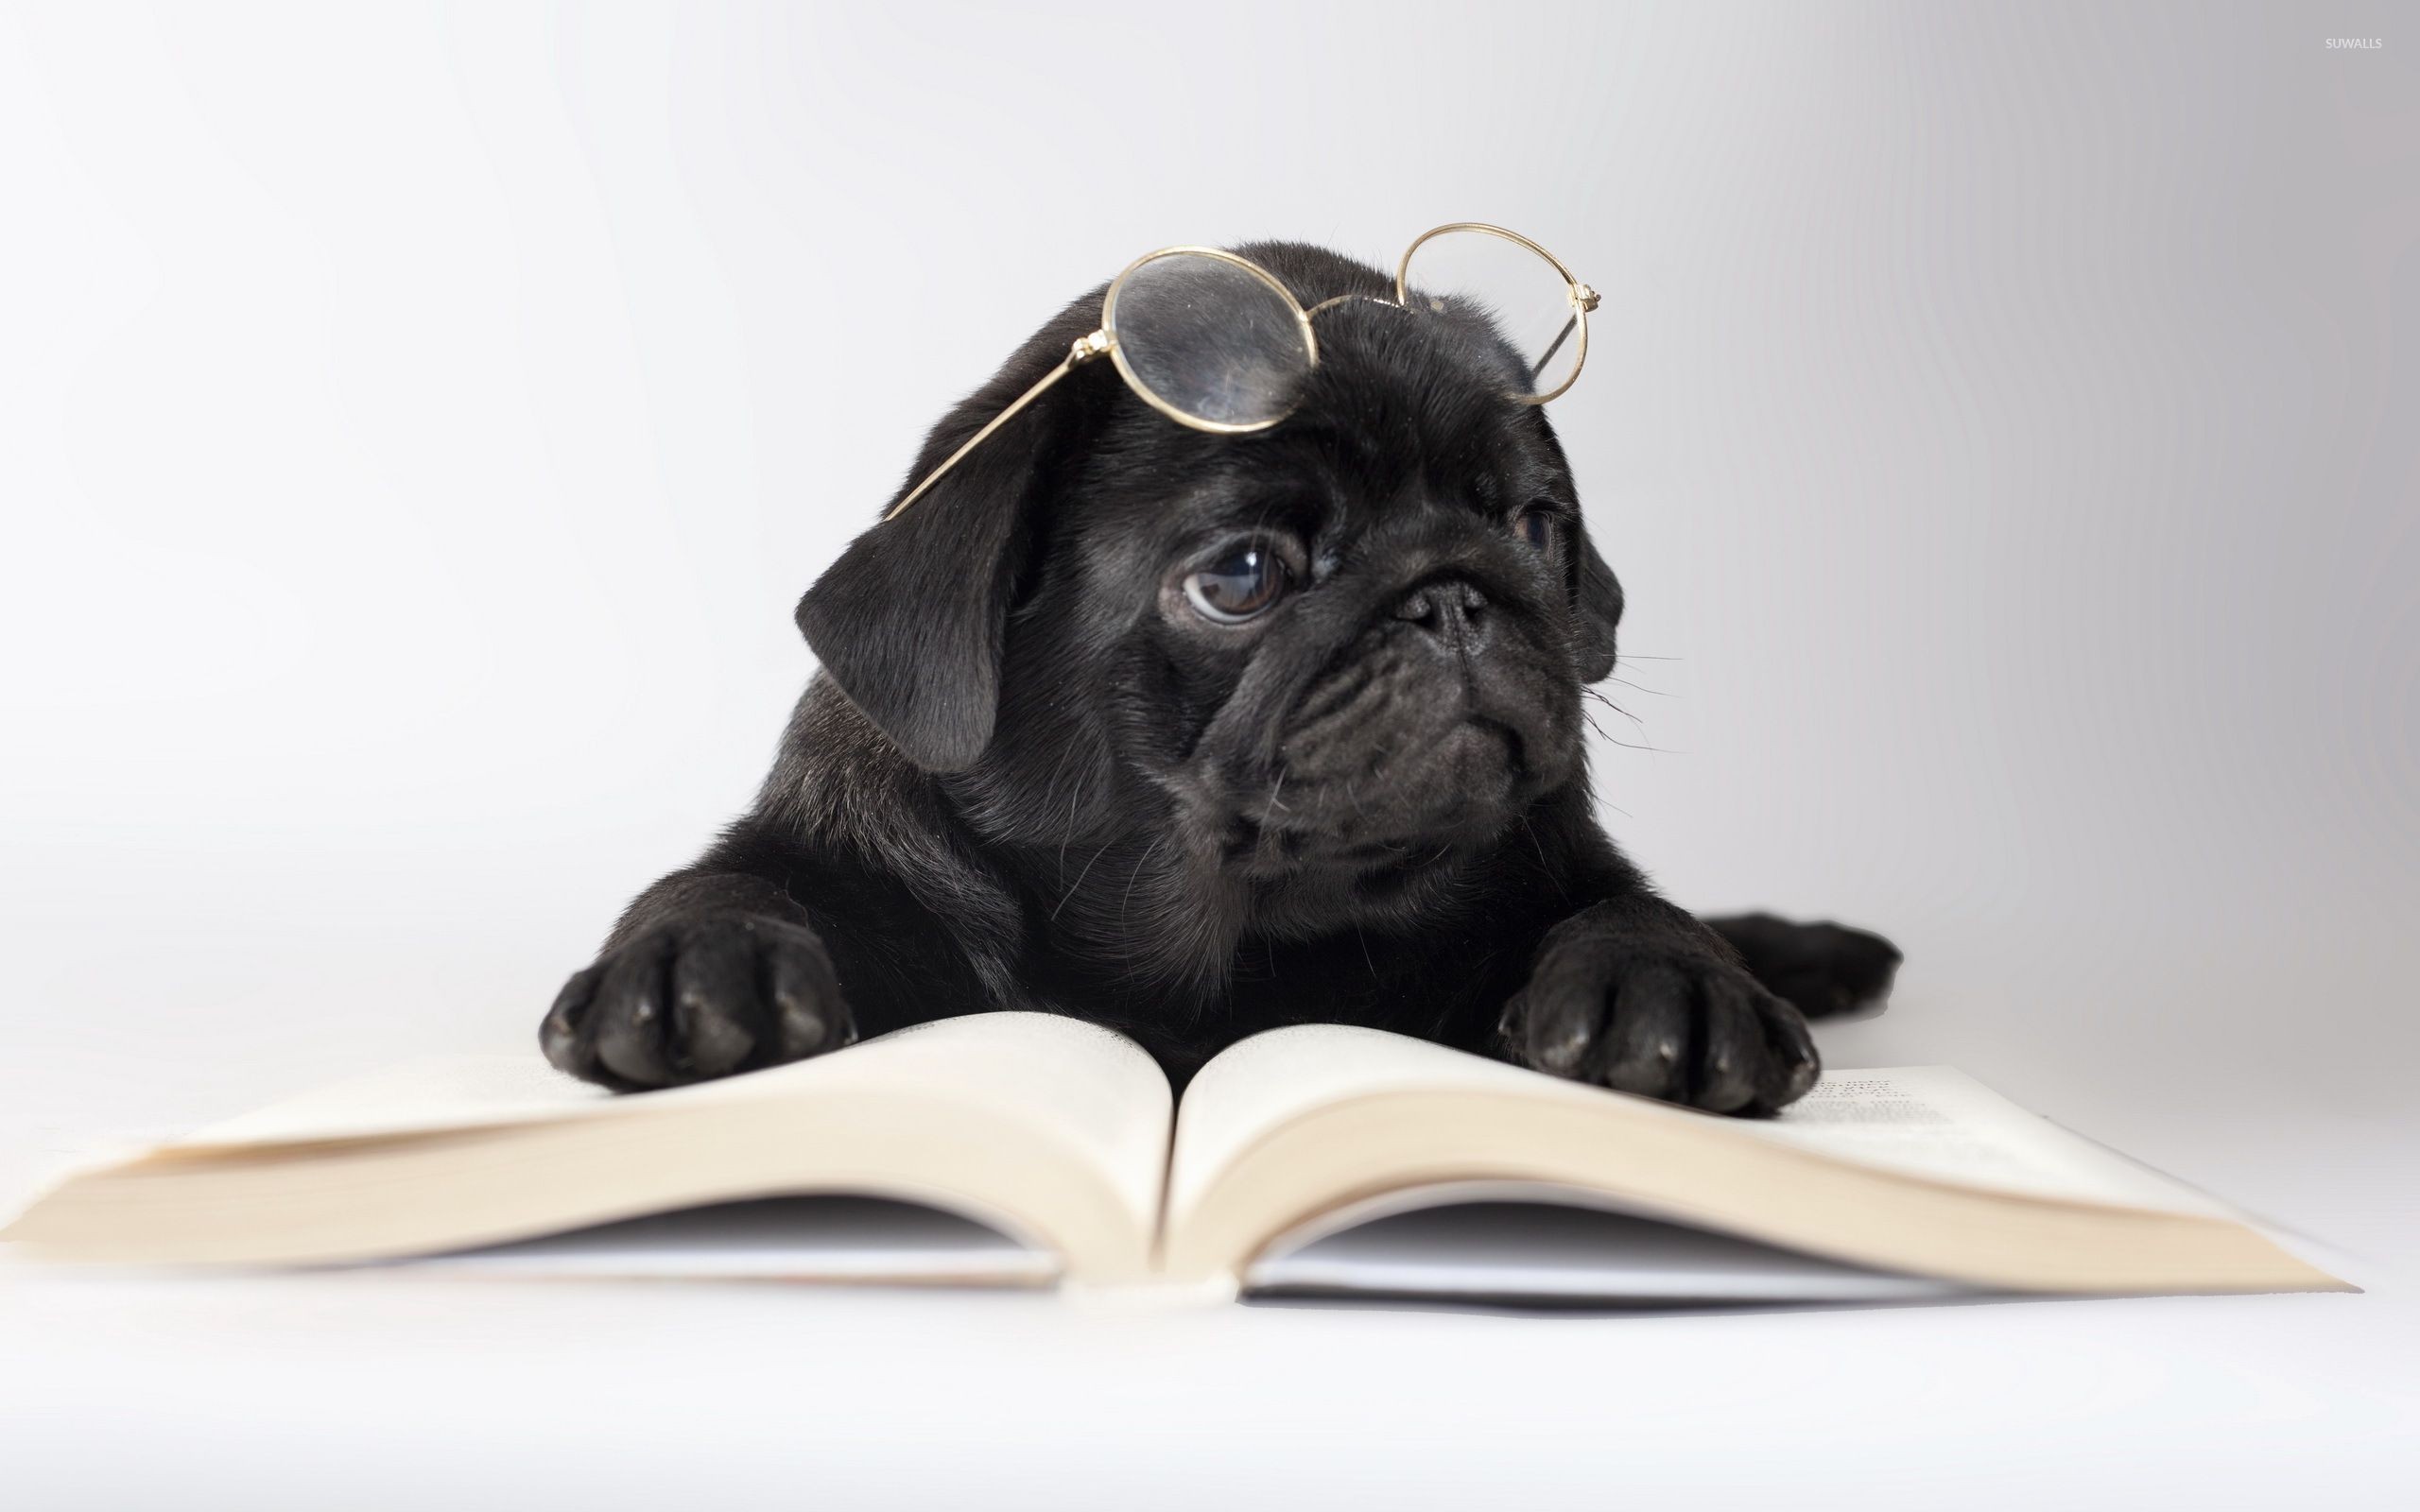 Black Pug With Glasses Wallpaper 2560x1600 Jpg